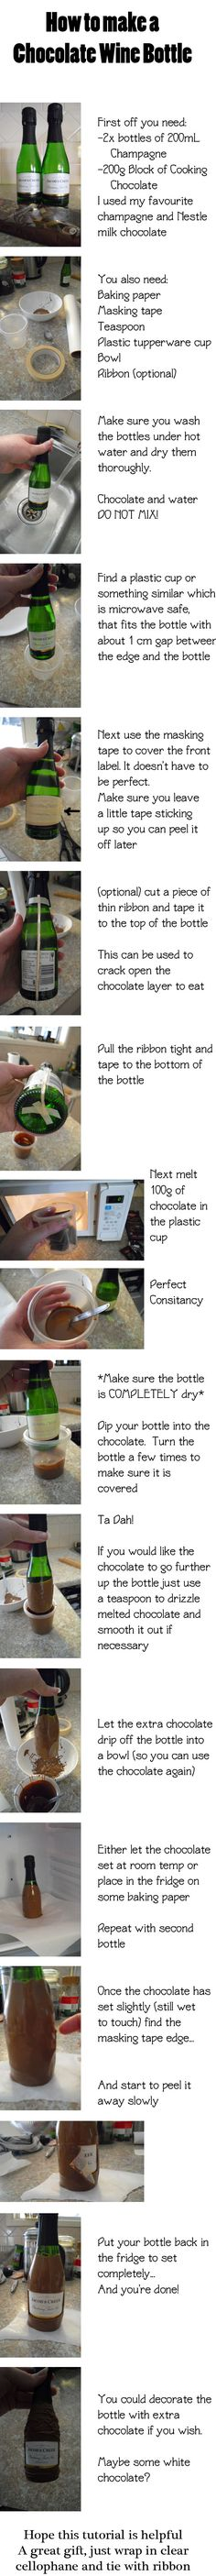 How to - Chocolate Dipped Wine Bottle